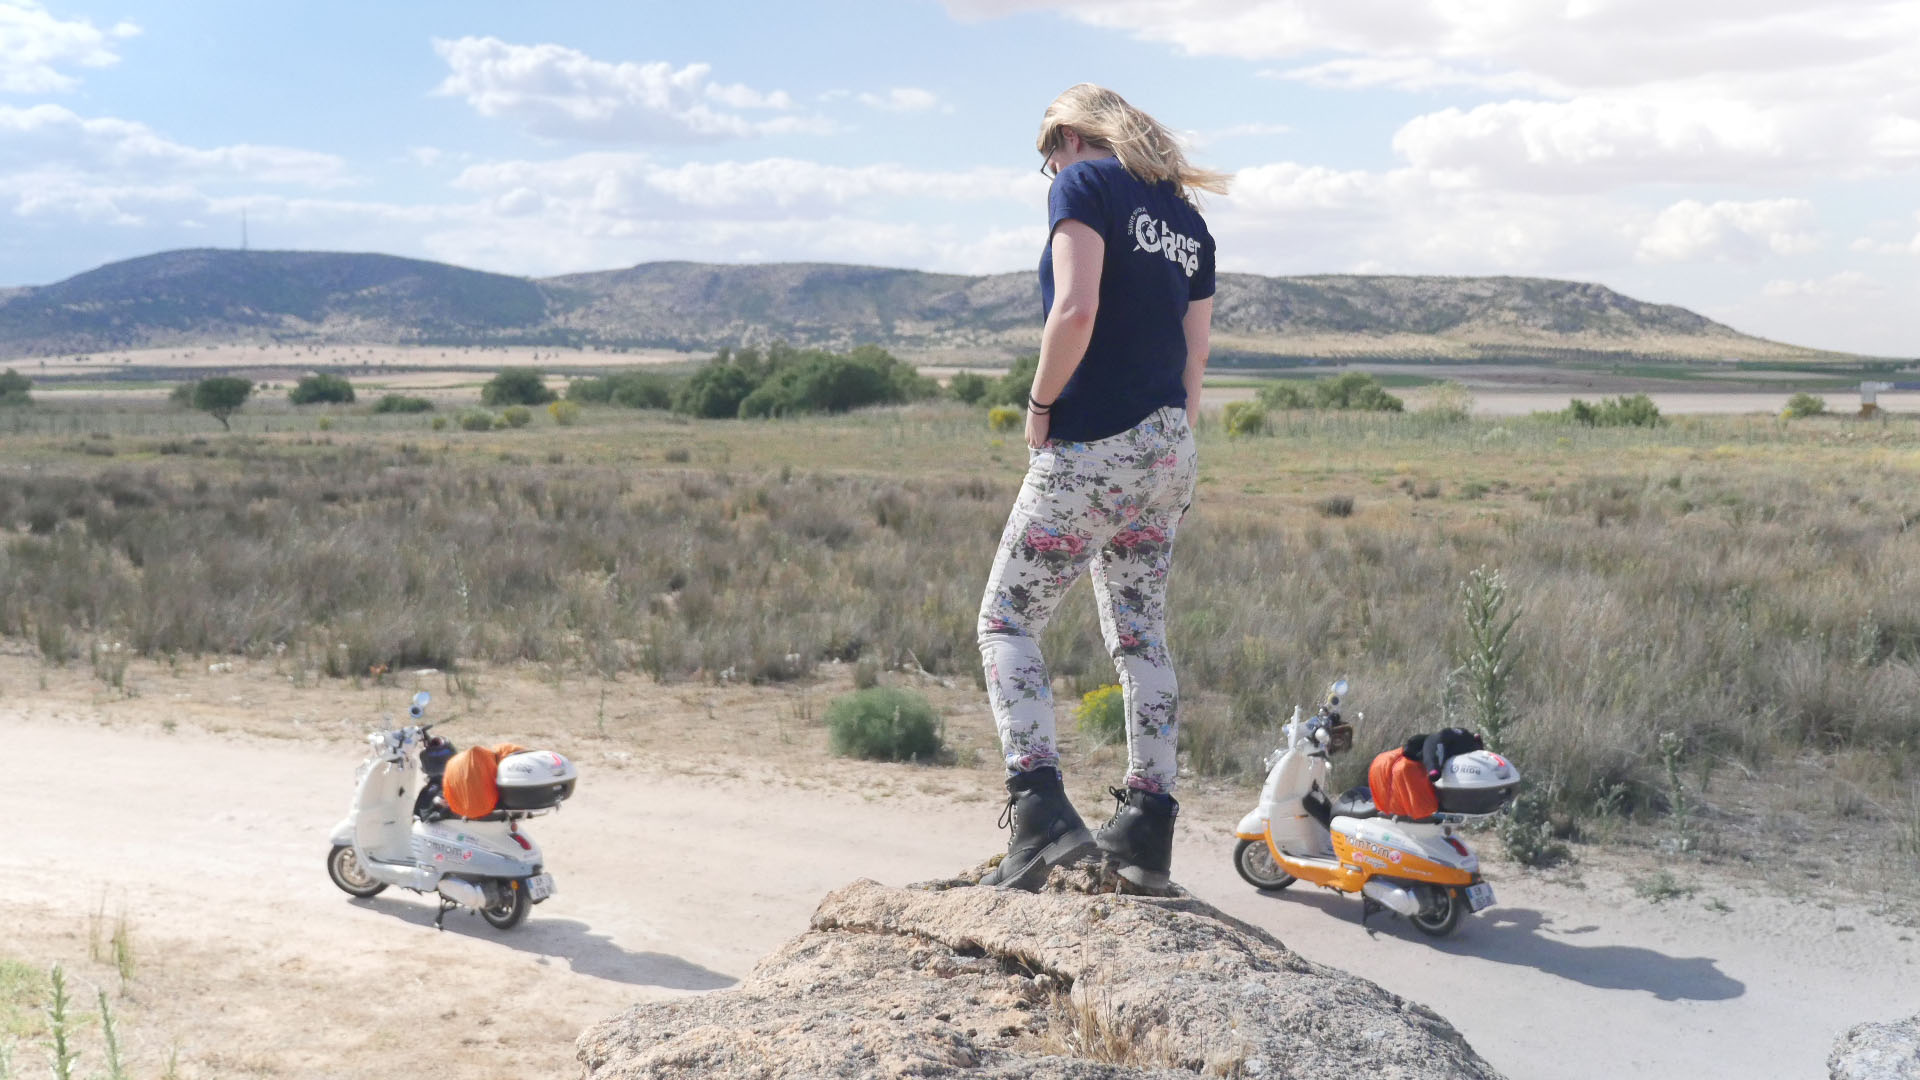 During their 49-day road-trip, Clémence and Lisa had the chance to cross with their scooter Django the desert of Bardenas. One of the most memorable stages of their journey of more than 4000 km.